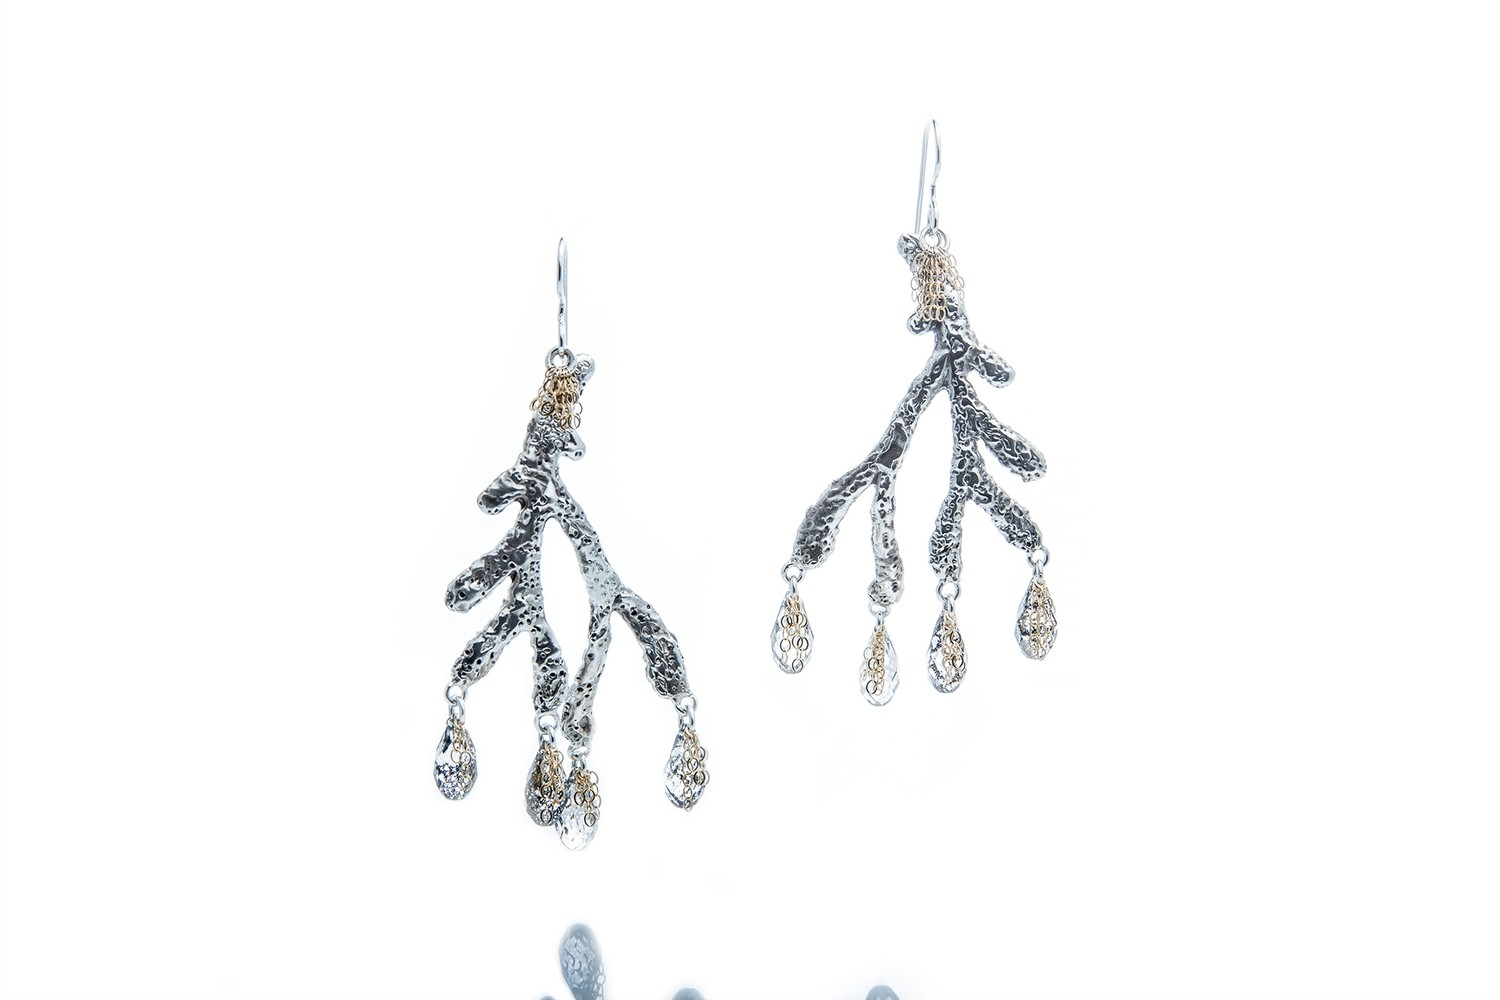 Drifting Coral Branch Chandelier Earrings